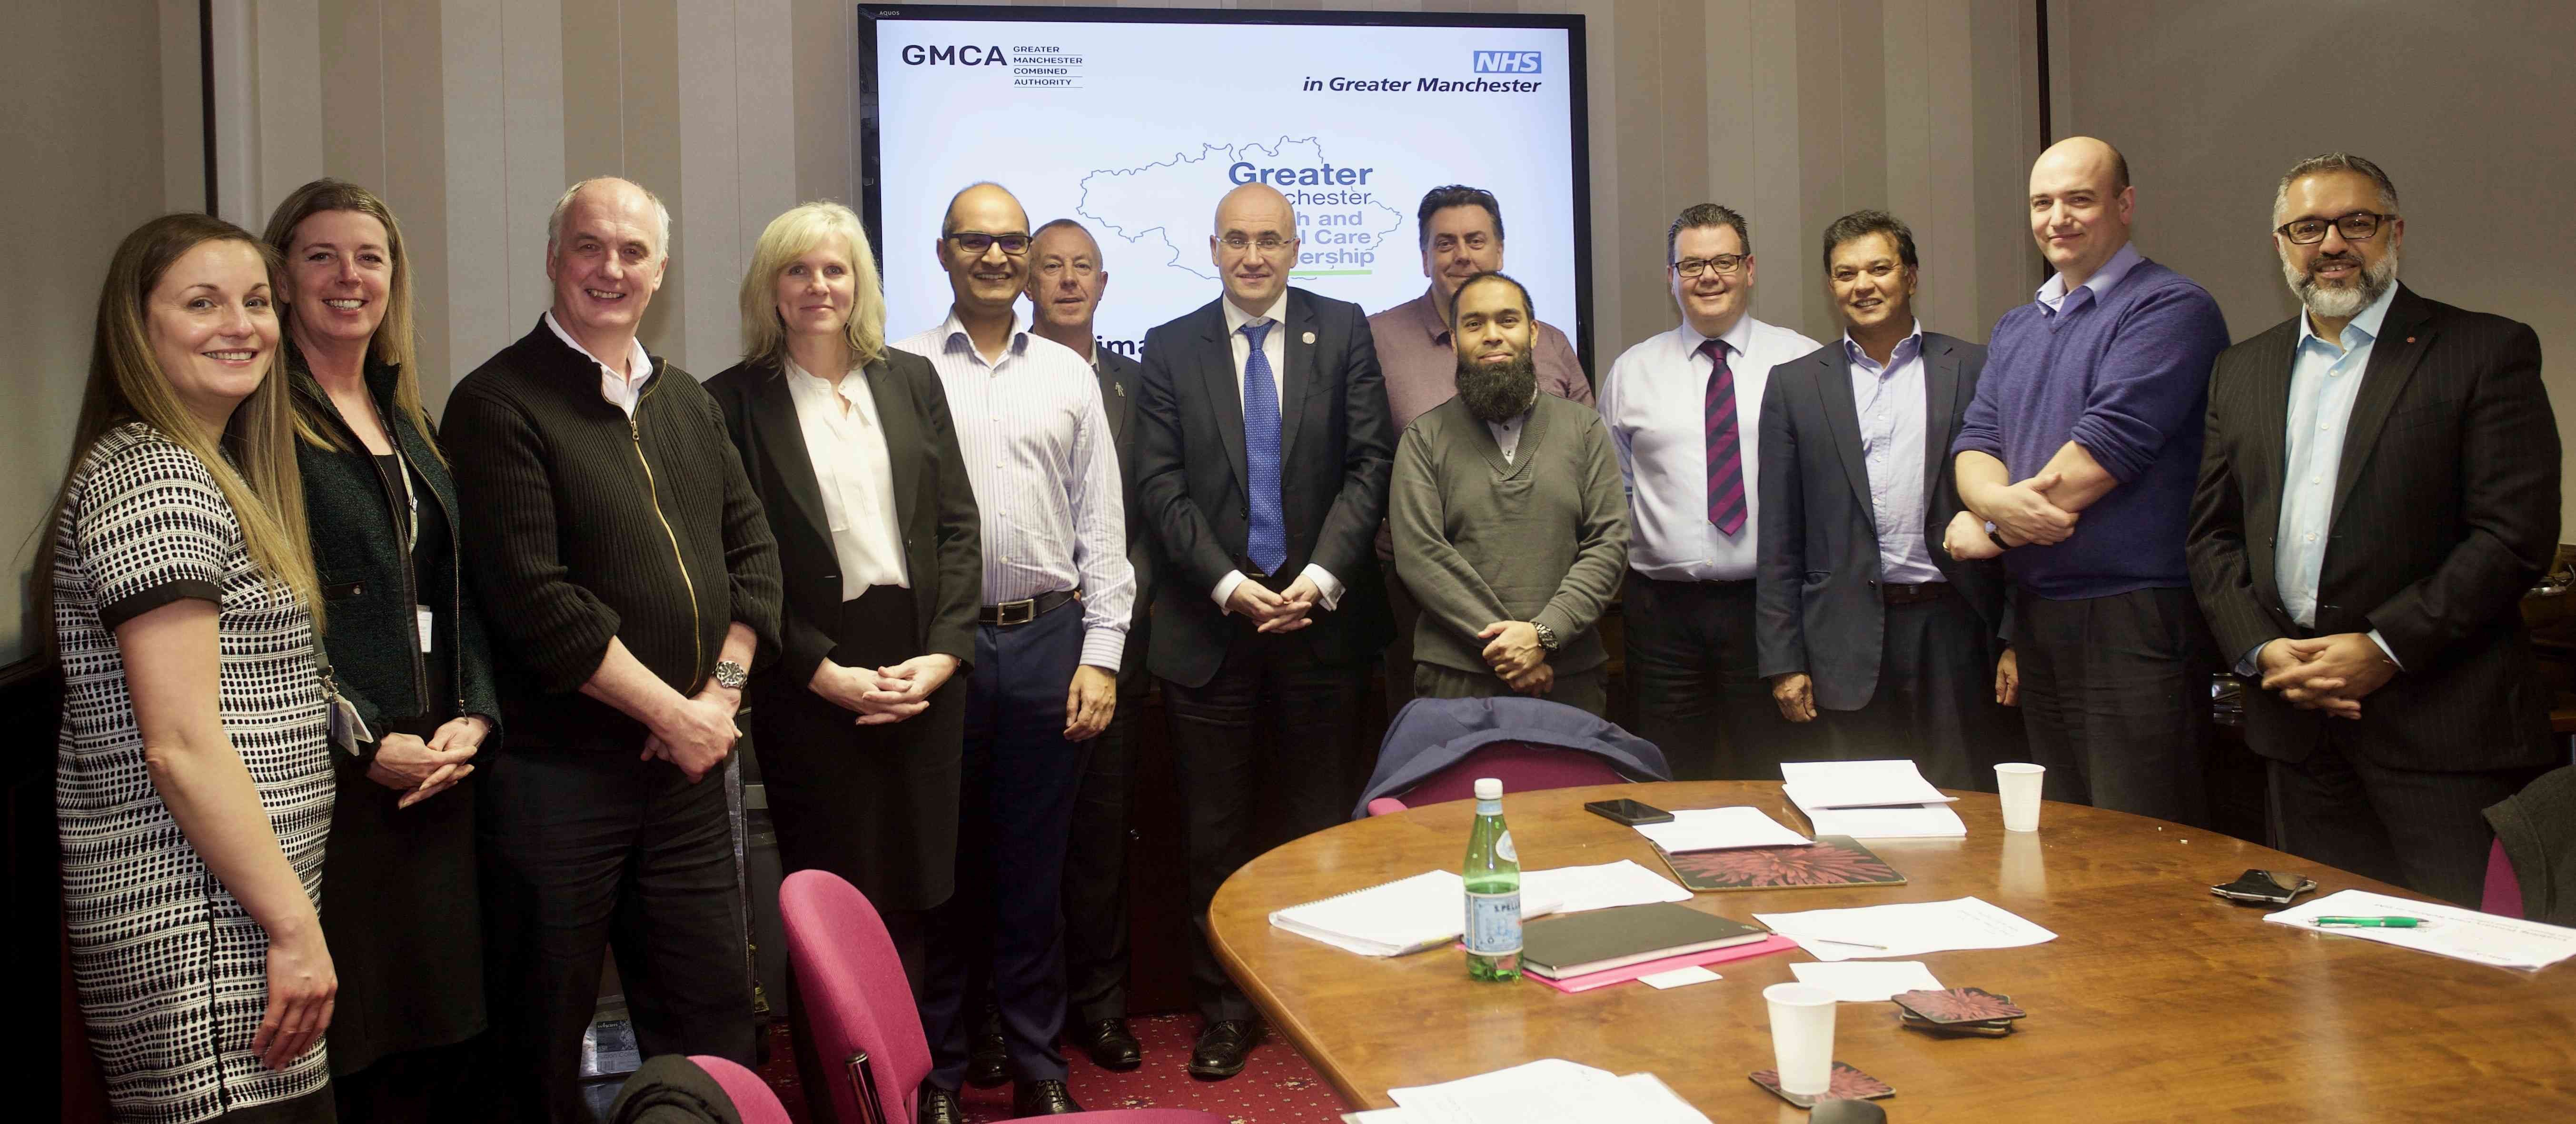 Association of Greater Manchester Local Medical Committees with Jon Rouse, Laura Browse and Sara Roscoe from the Greater Manchester Health & Social Care Partnership